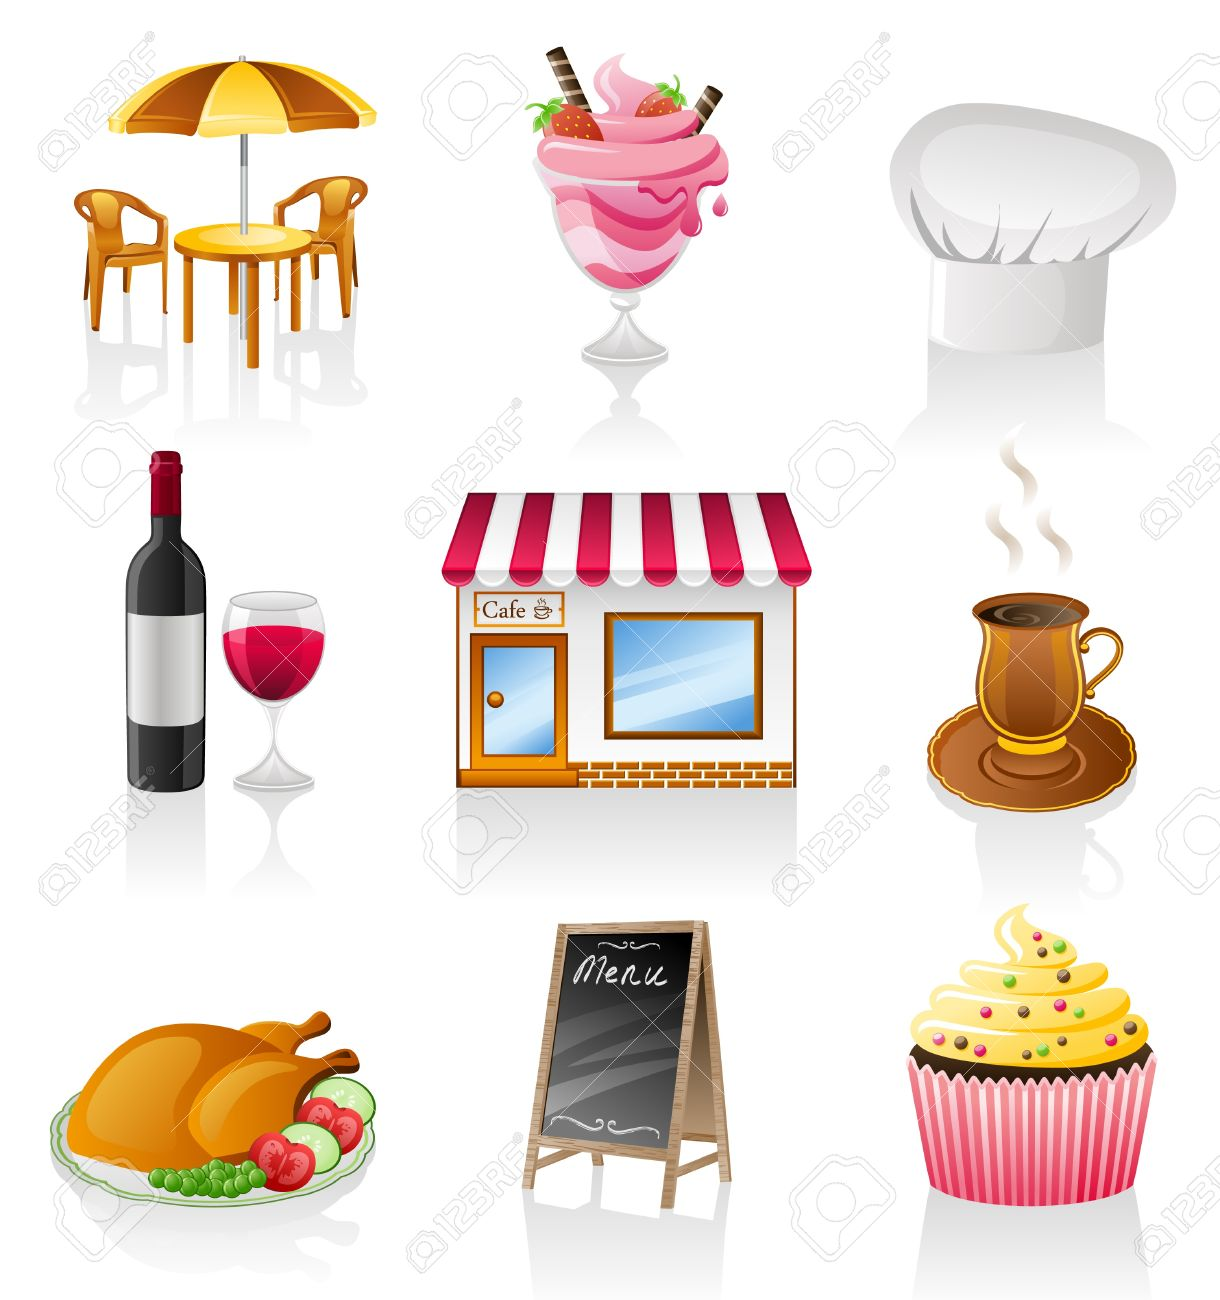 Fancy restaurant buildings clip art - Restaurant Building Vector Cafe Icon Set Isolated On White Background